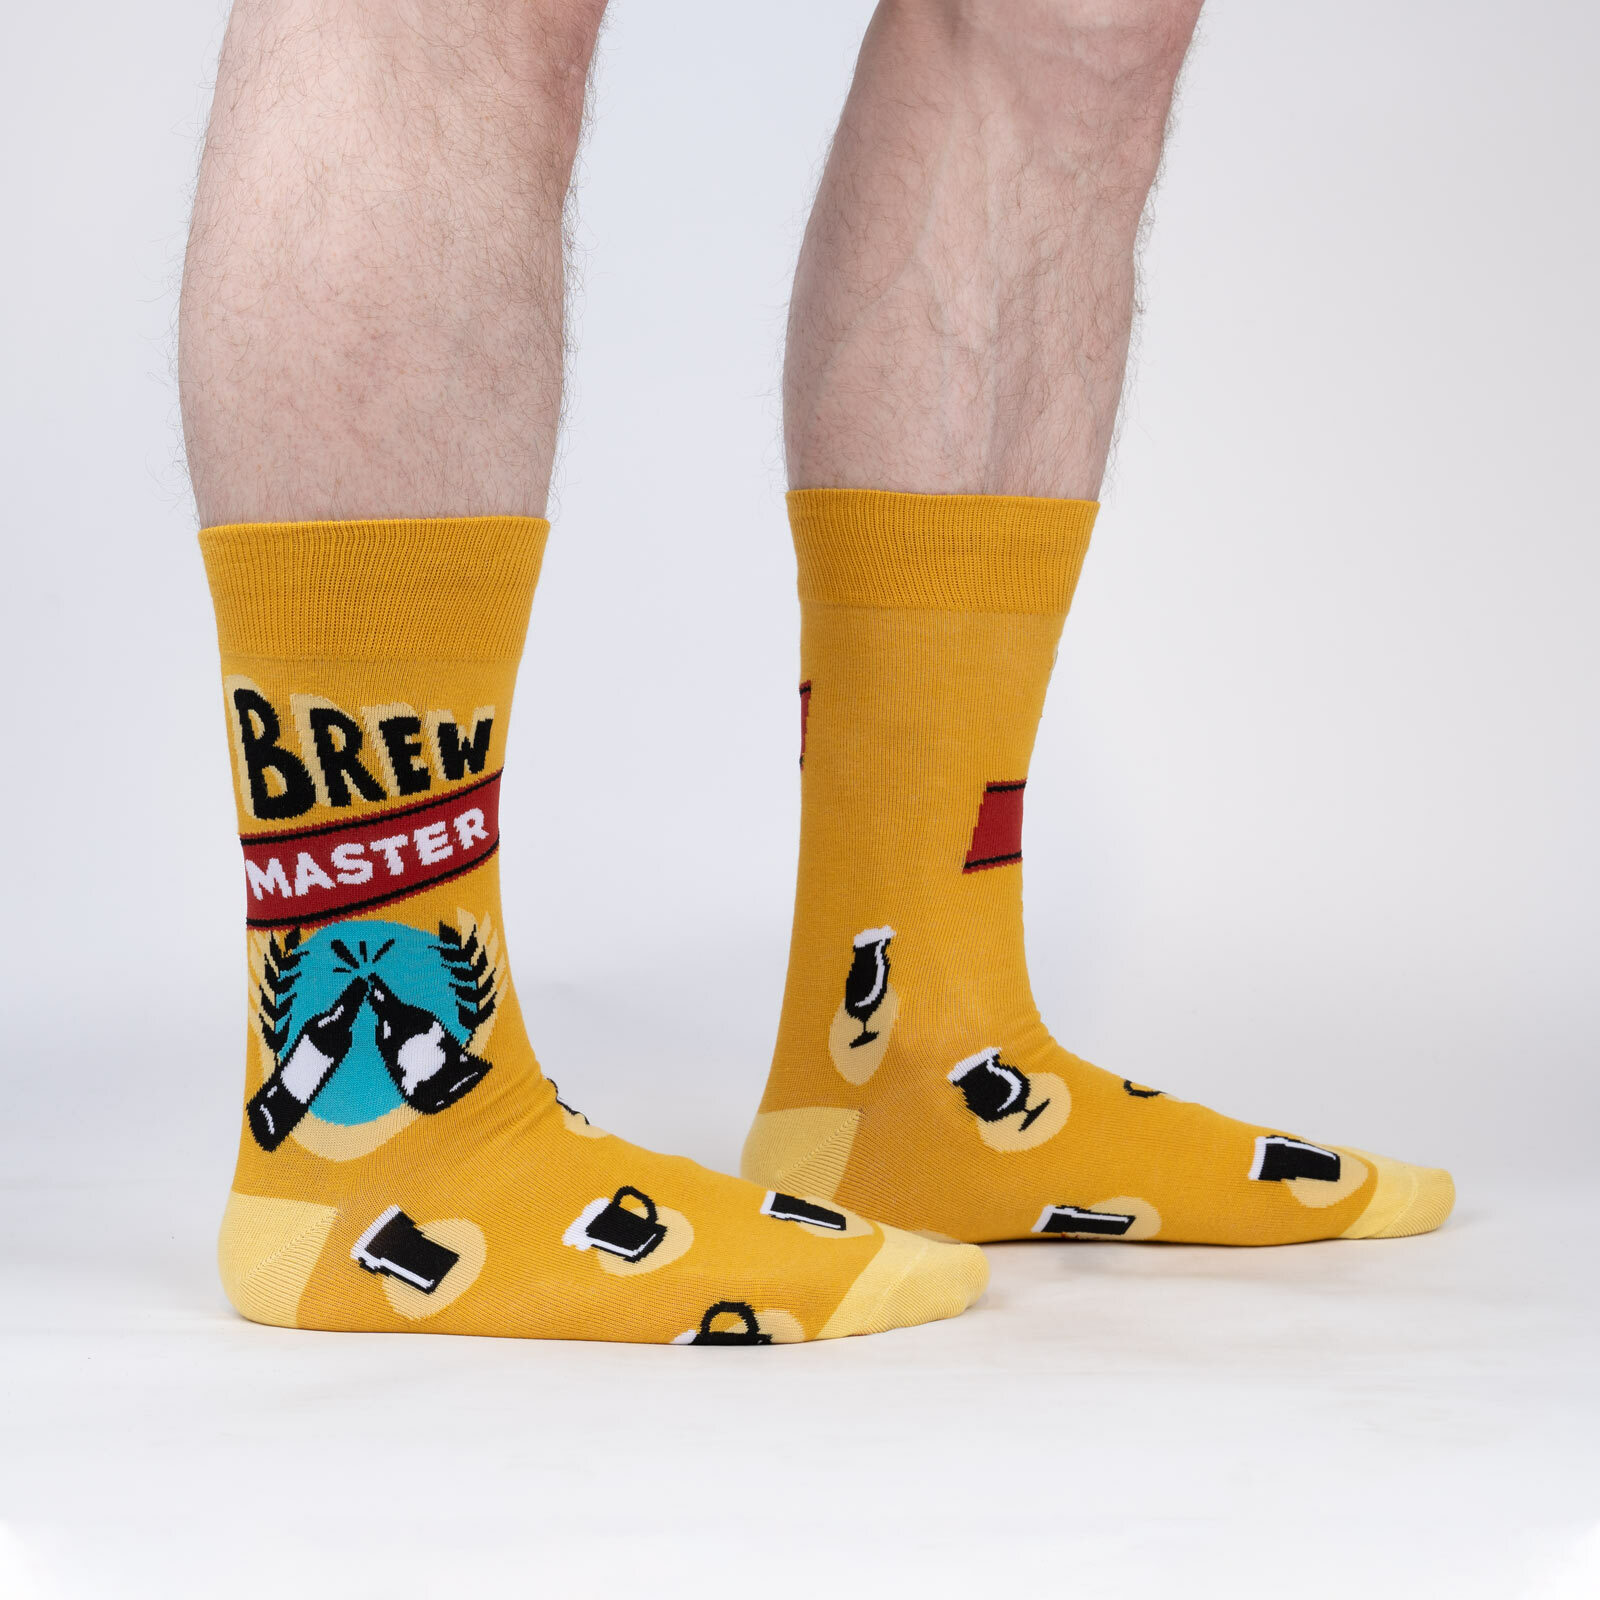 model wearing Brew Master - Beer Lover Crew Socks Yellow - Men's